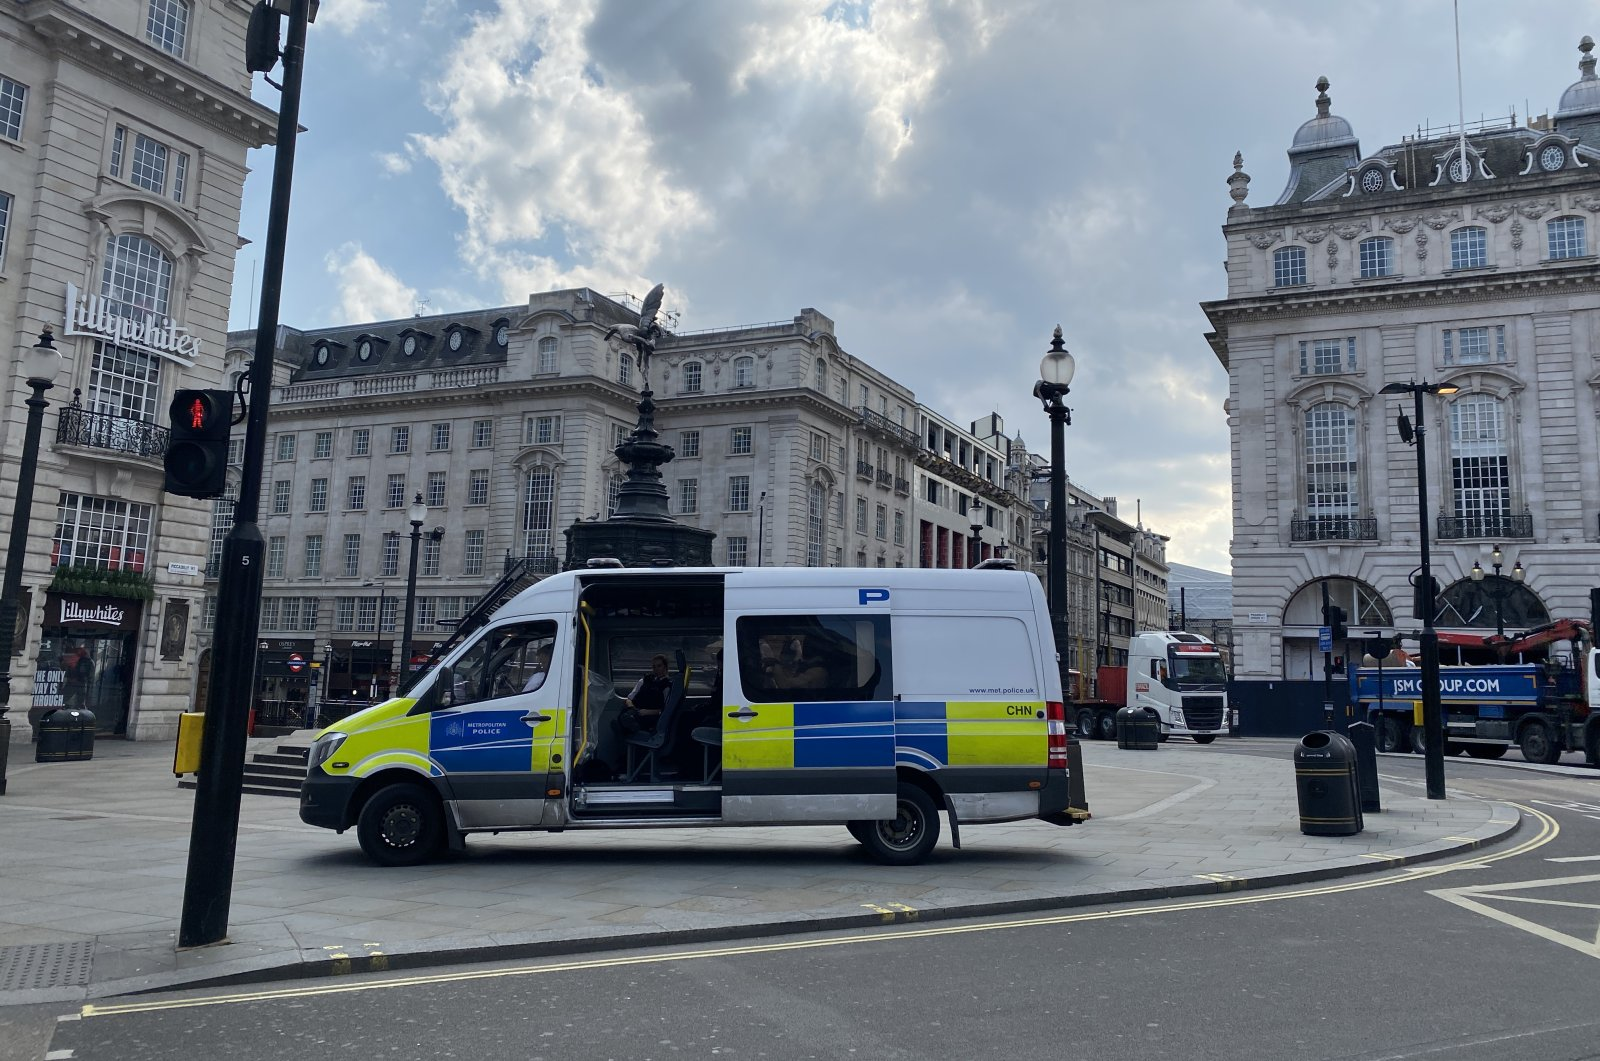 Police teams ensure London's normally crowded Piccadilly Circus remains crowd-free in light of pandemic measures, May 4, 2020 (AA Photo)